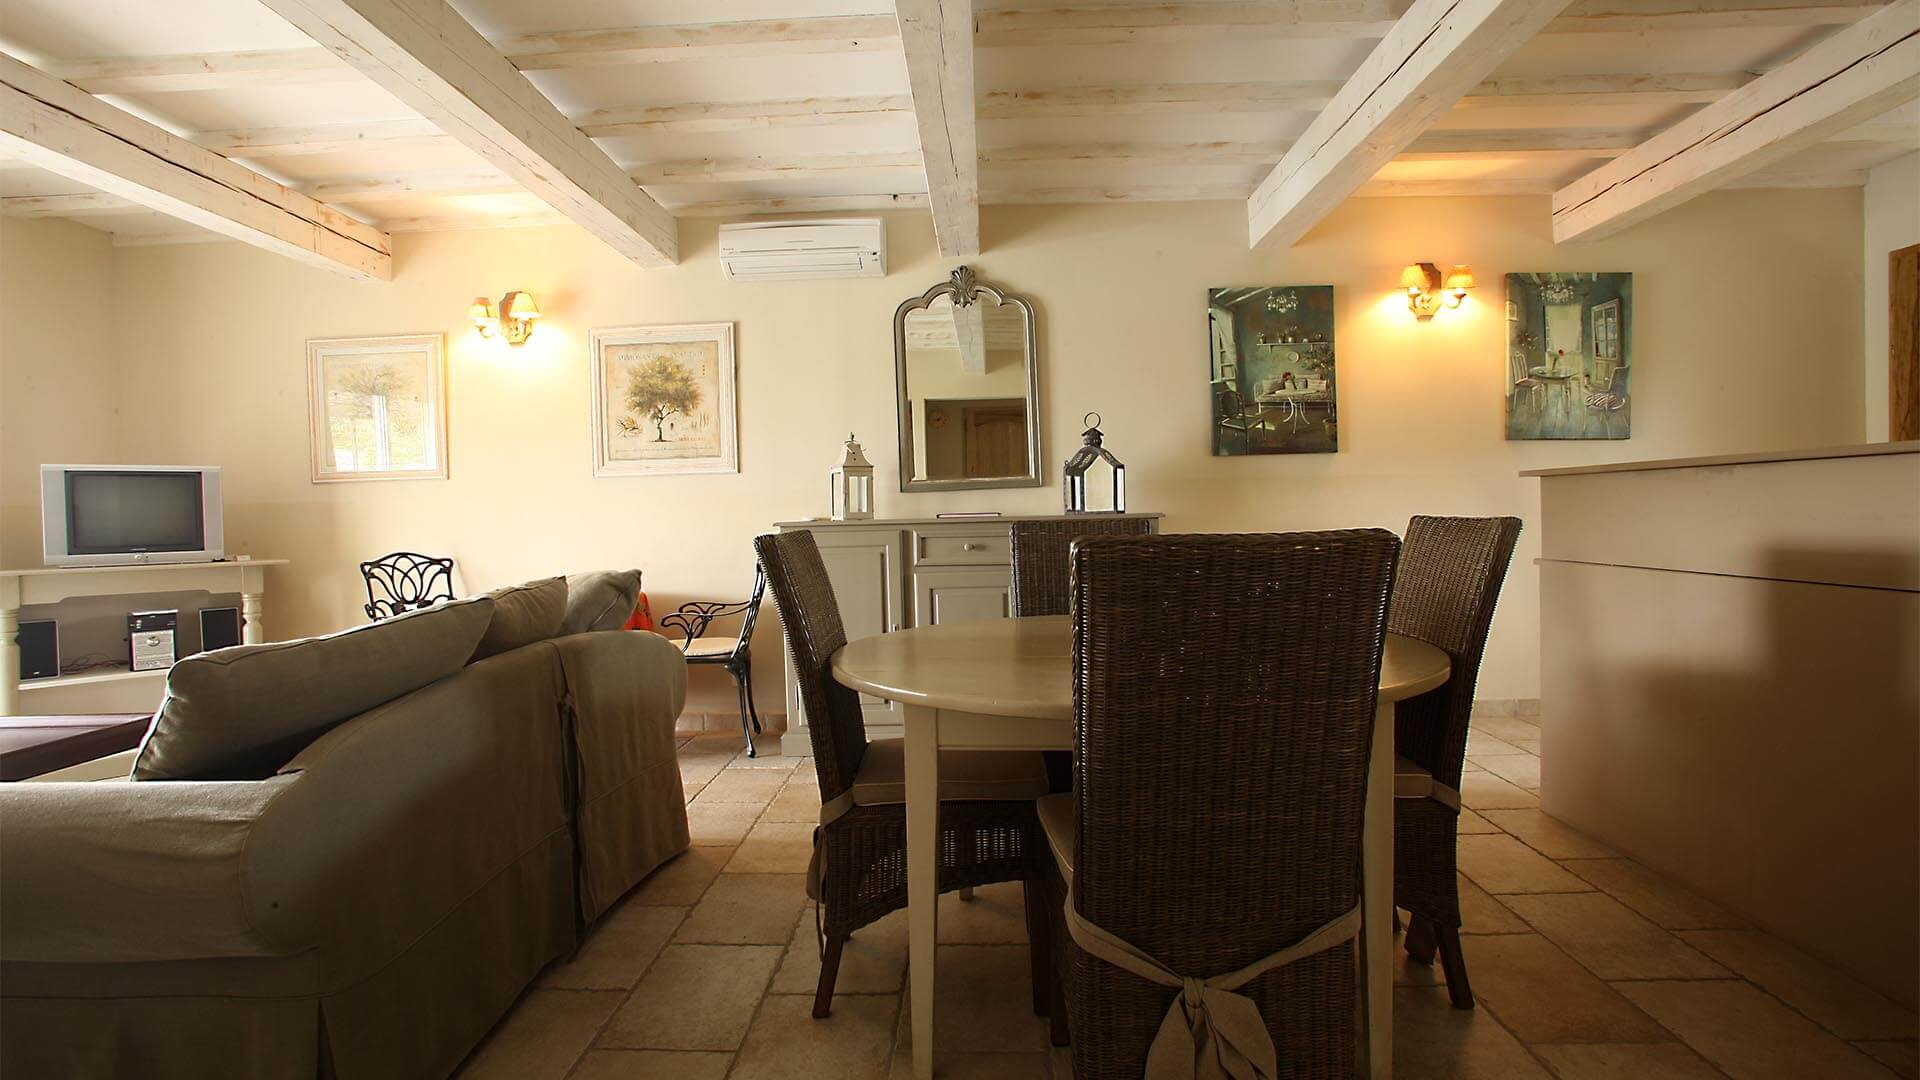 Rent holiday 2 bedroom villa in Provence Alpes Côte d'Azur | Villa terre nature | Air conditioned lounge